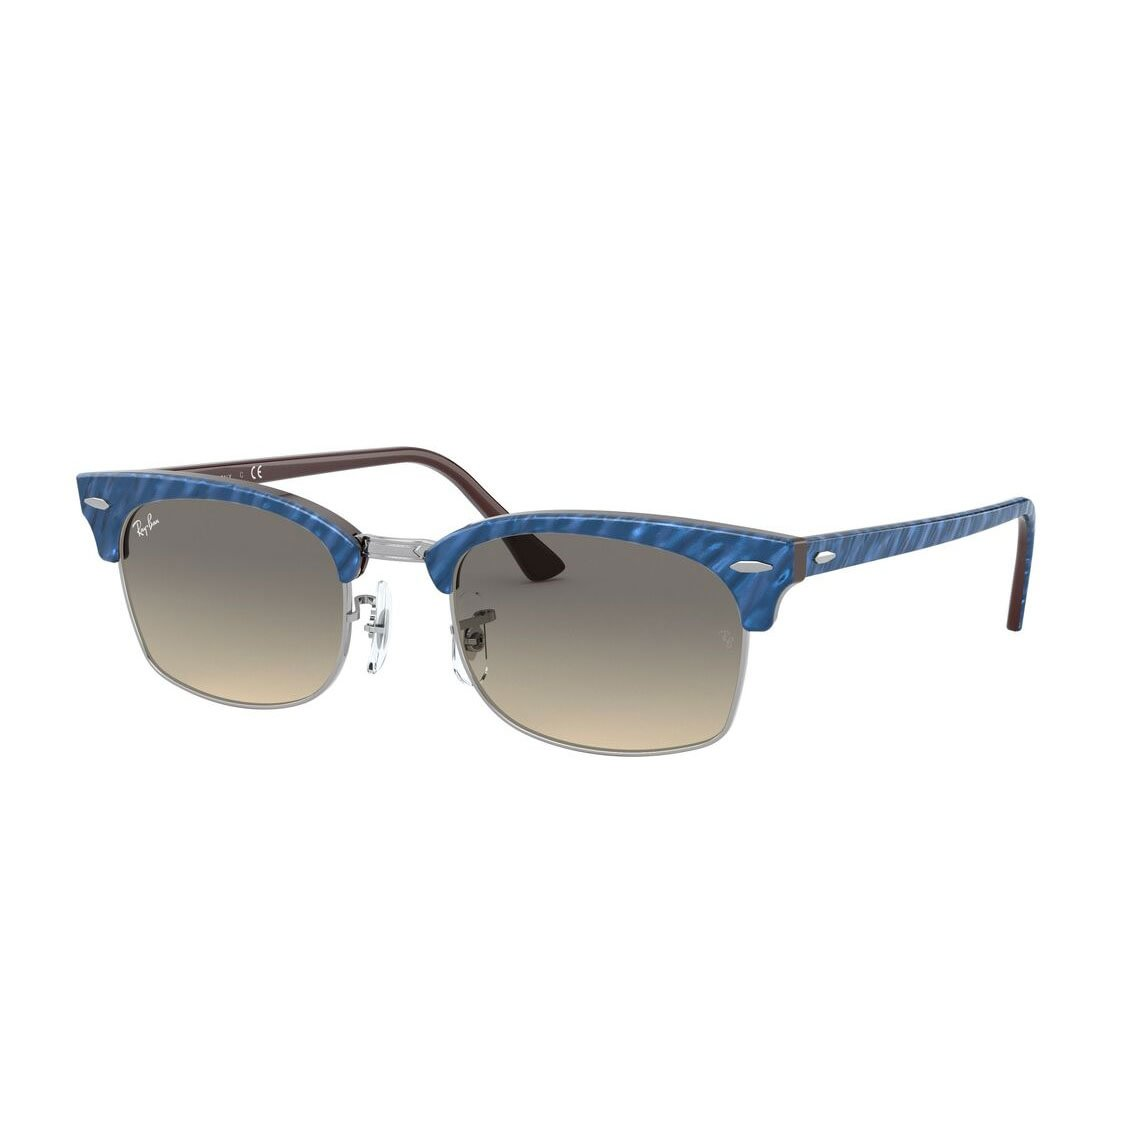 Ray-Ban Clubmaster Square RB3916 131032 5221